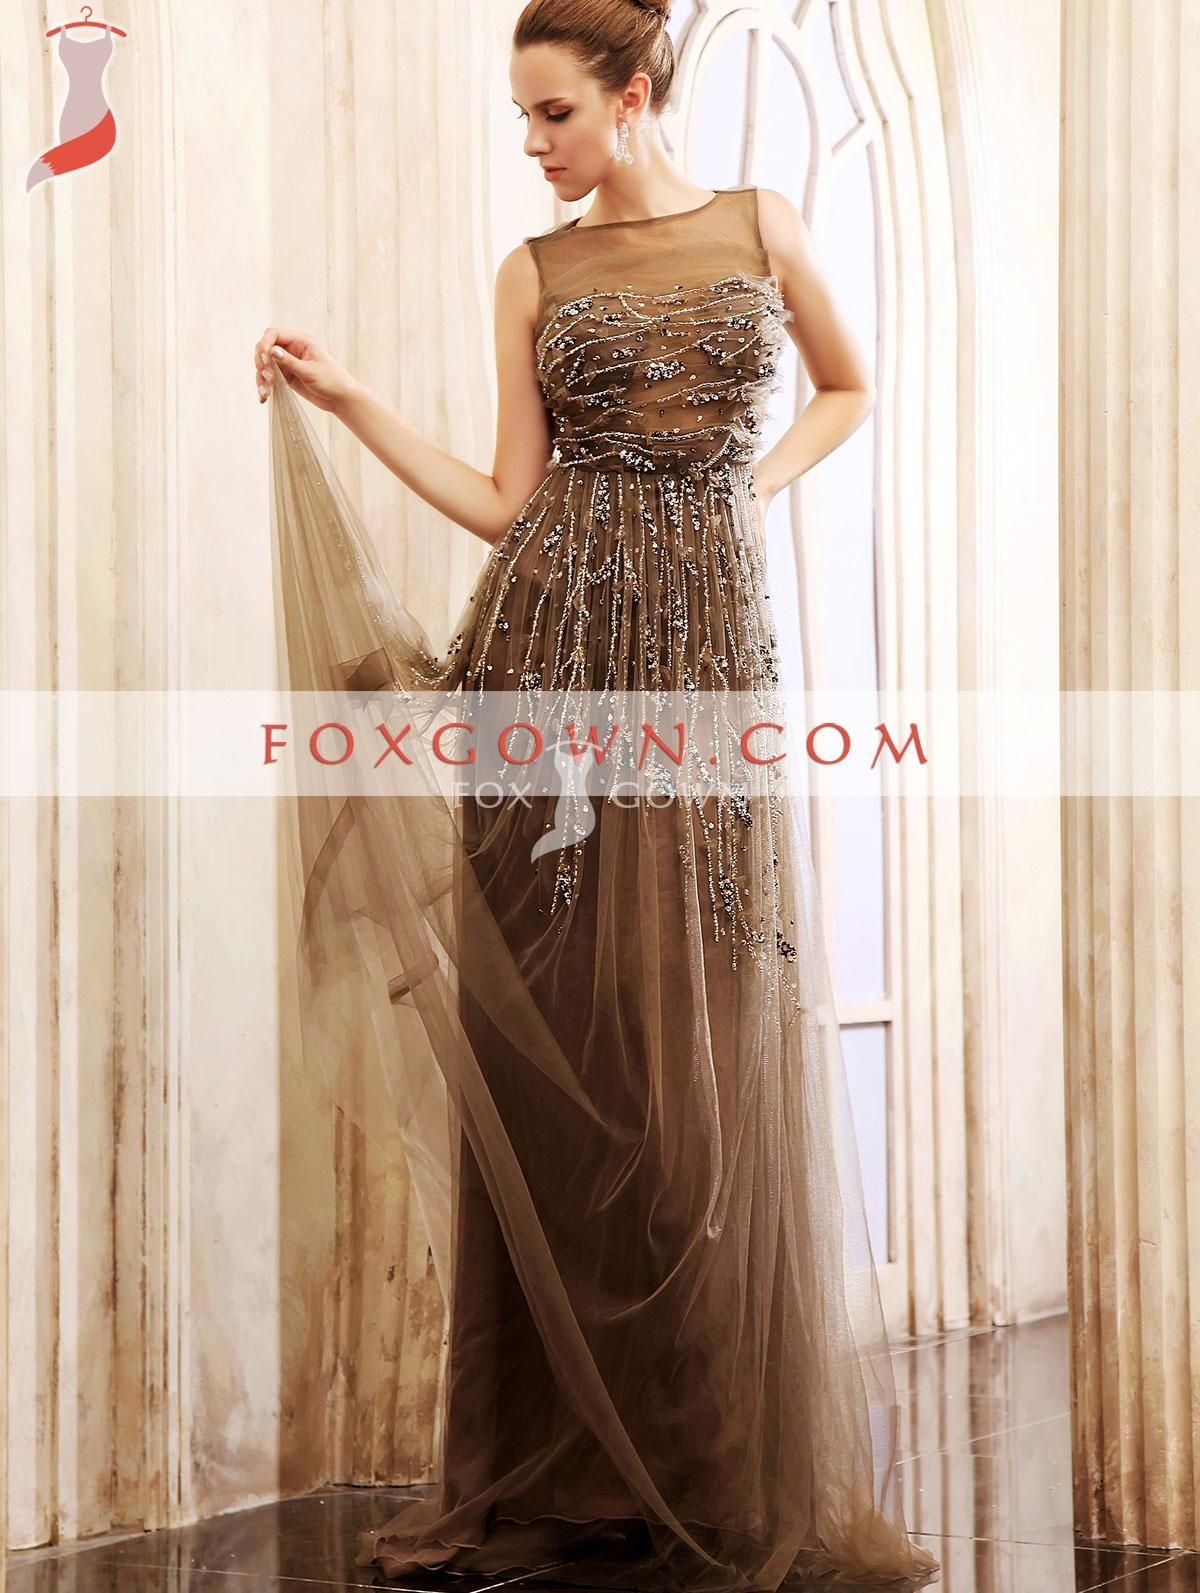 17 Best images about luxury dresses on Pinterest | Floor length ...